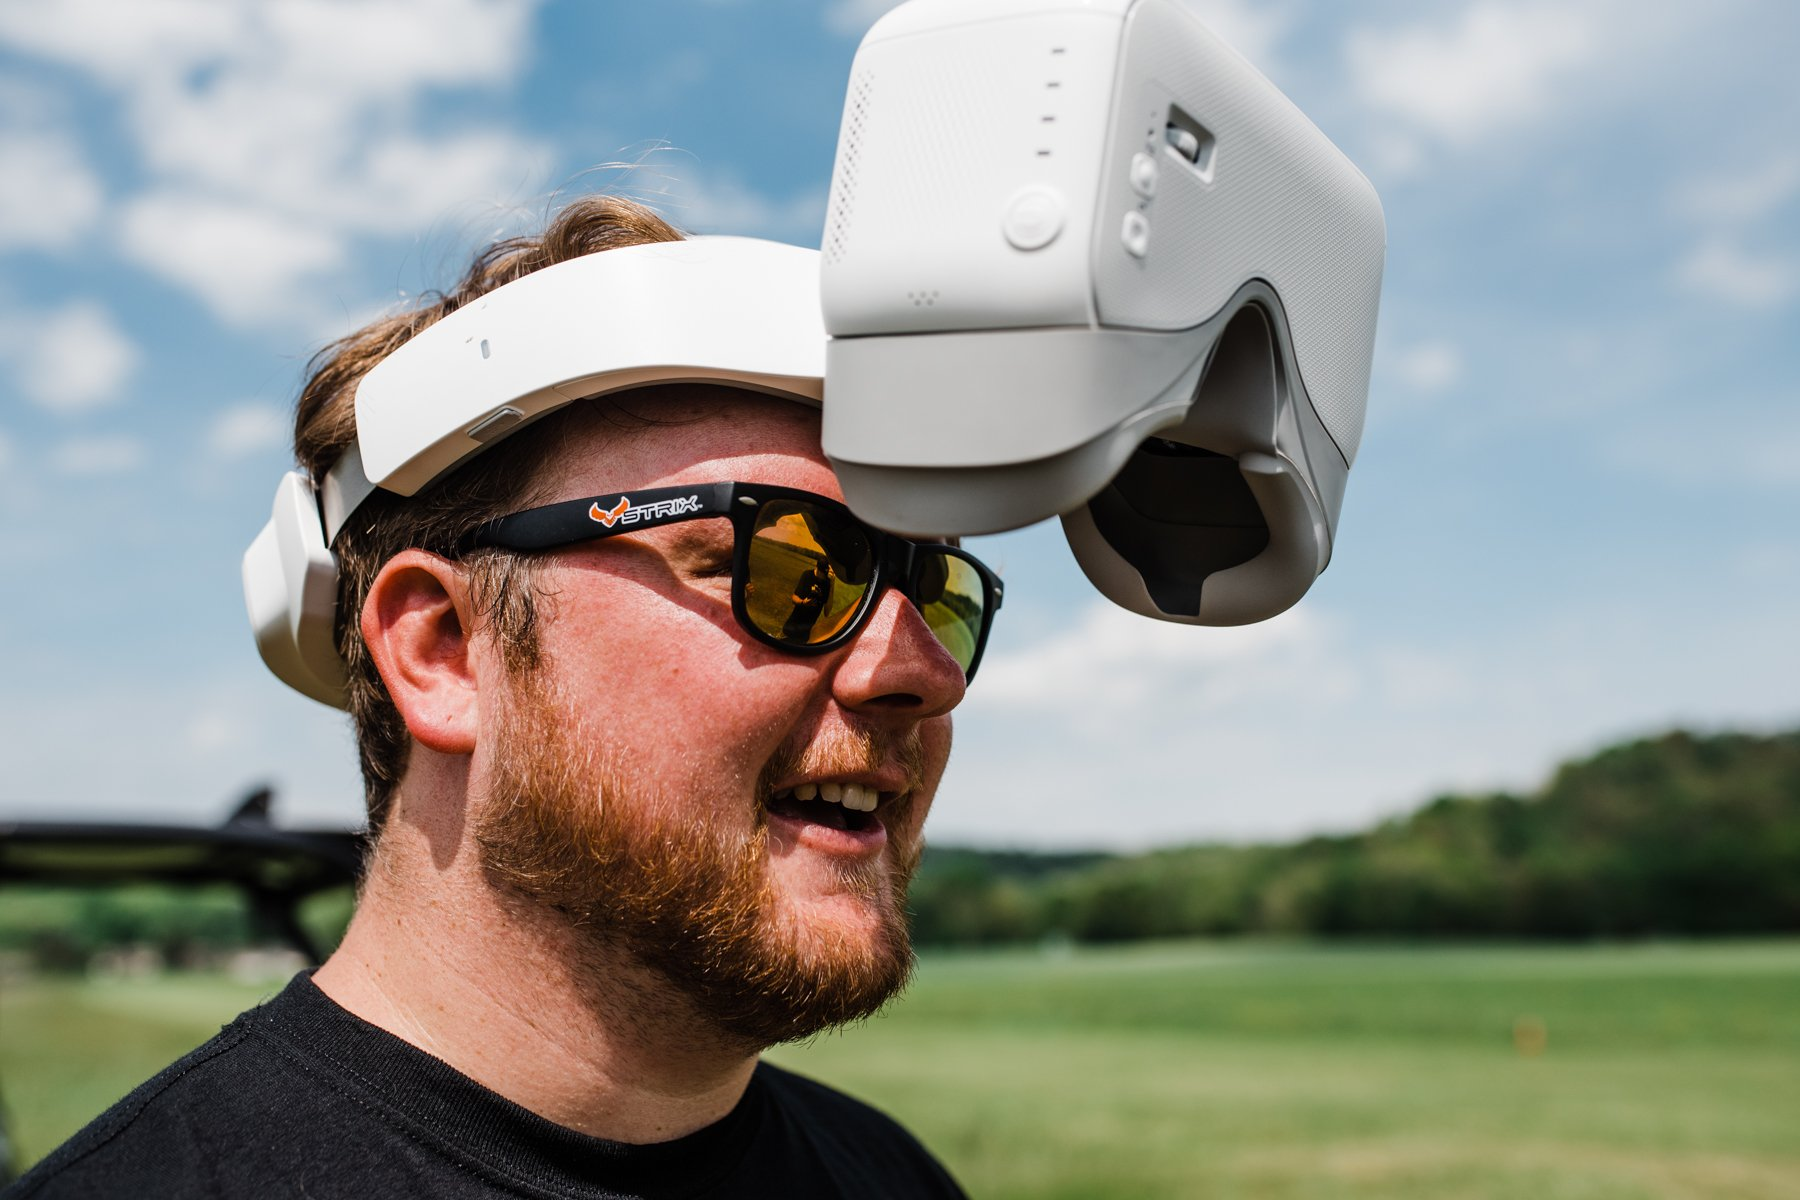 What We Enjoyed About The DJI Goggles